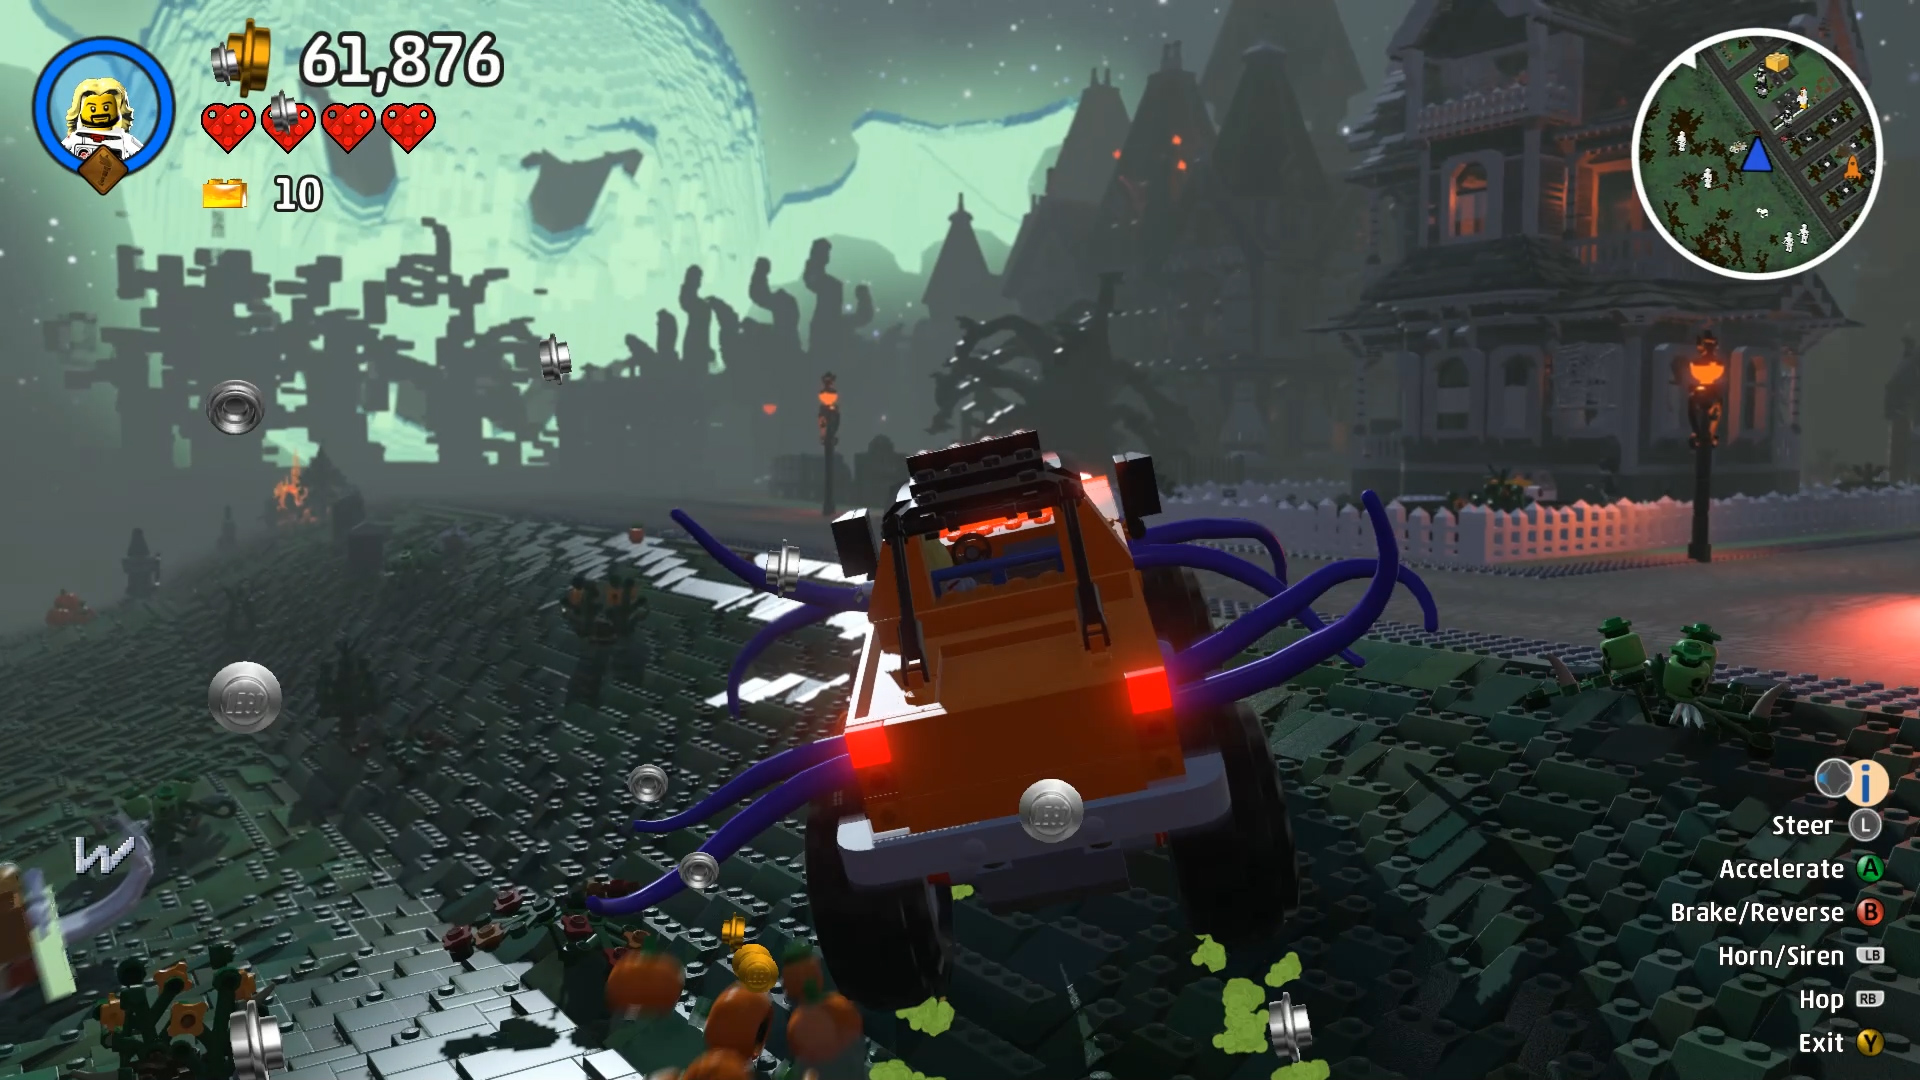 Lego Worlds Introduces Spooky New Adventures With The New Monsters DLC Pack